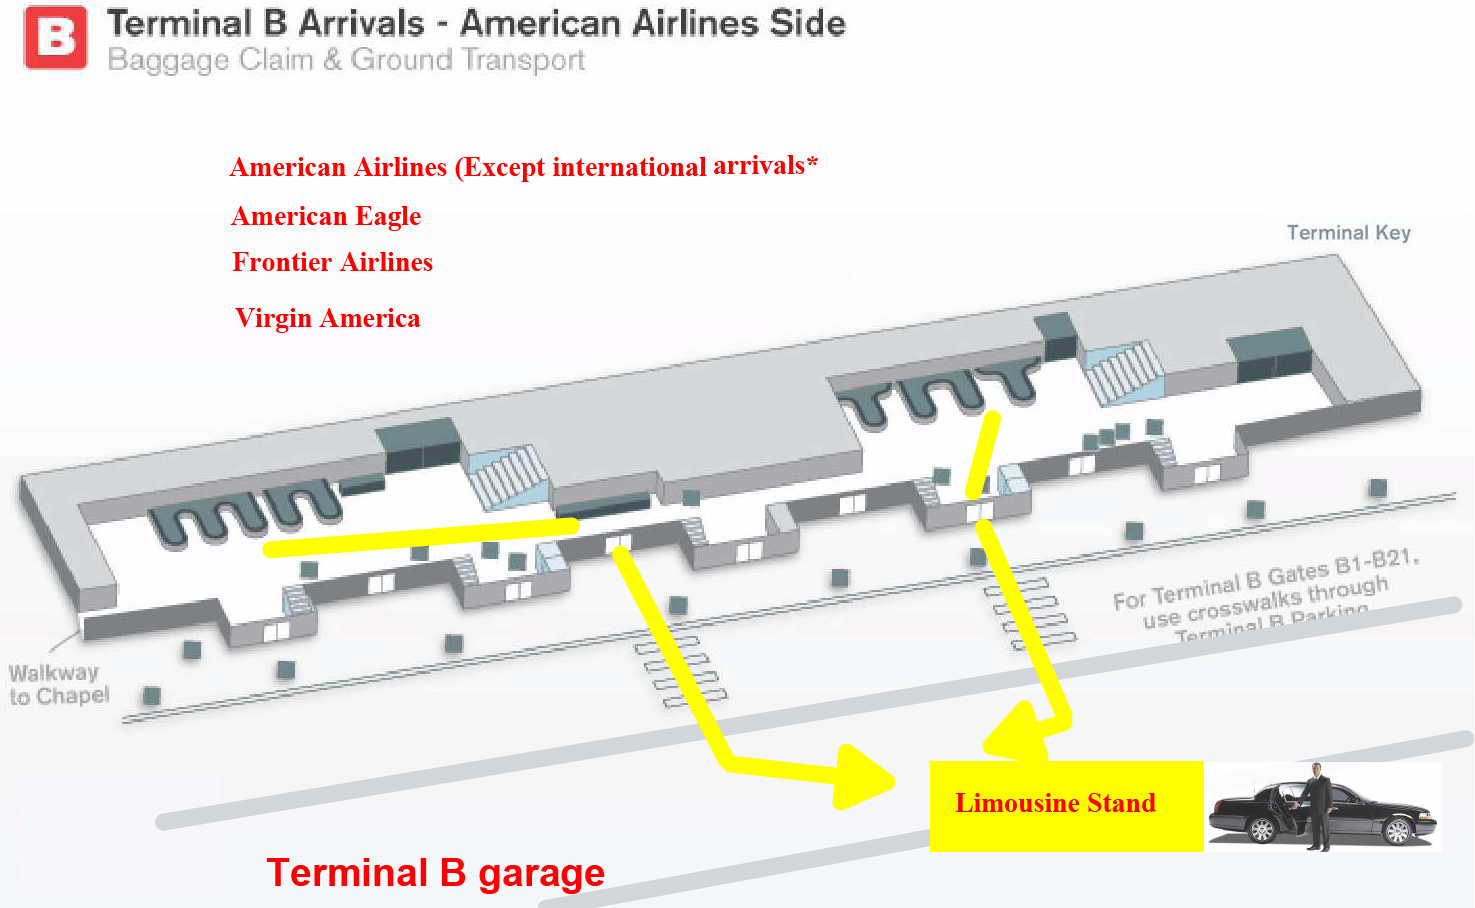 Airport information − Travel information − American Airlines